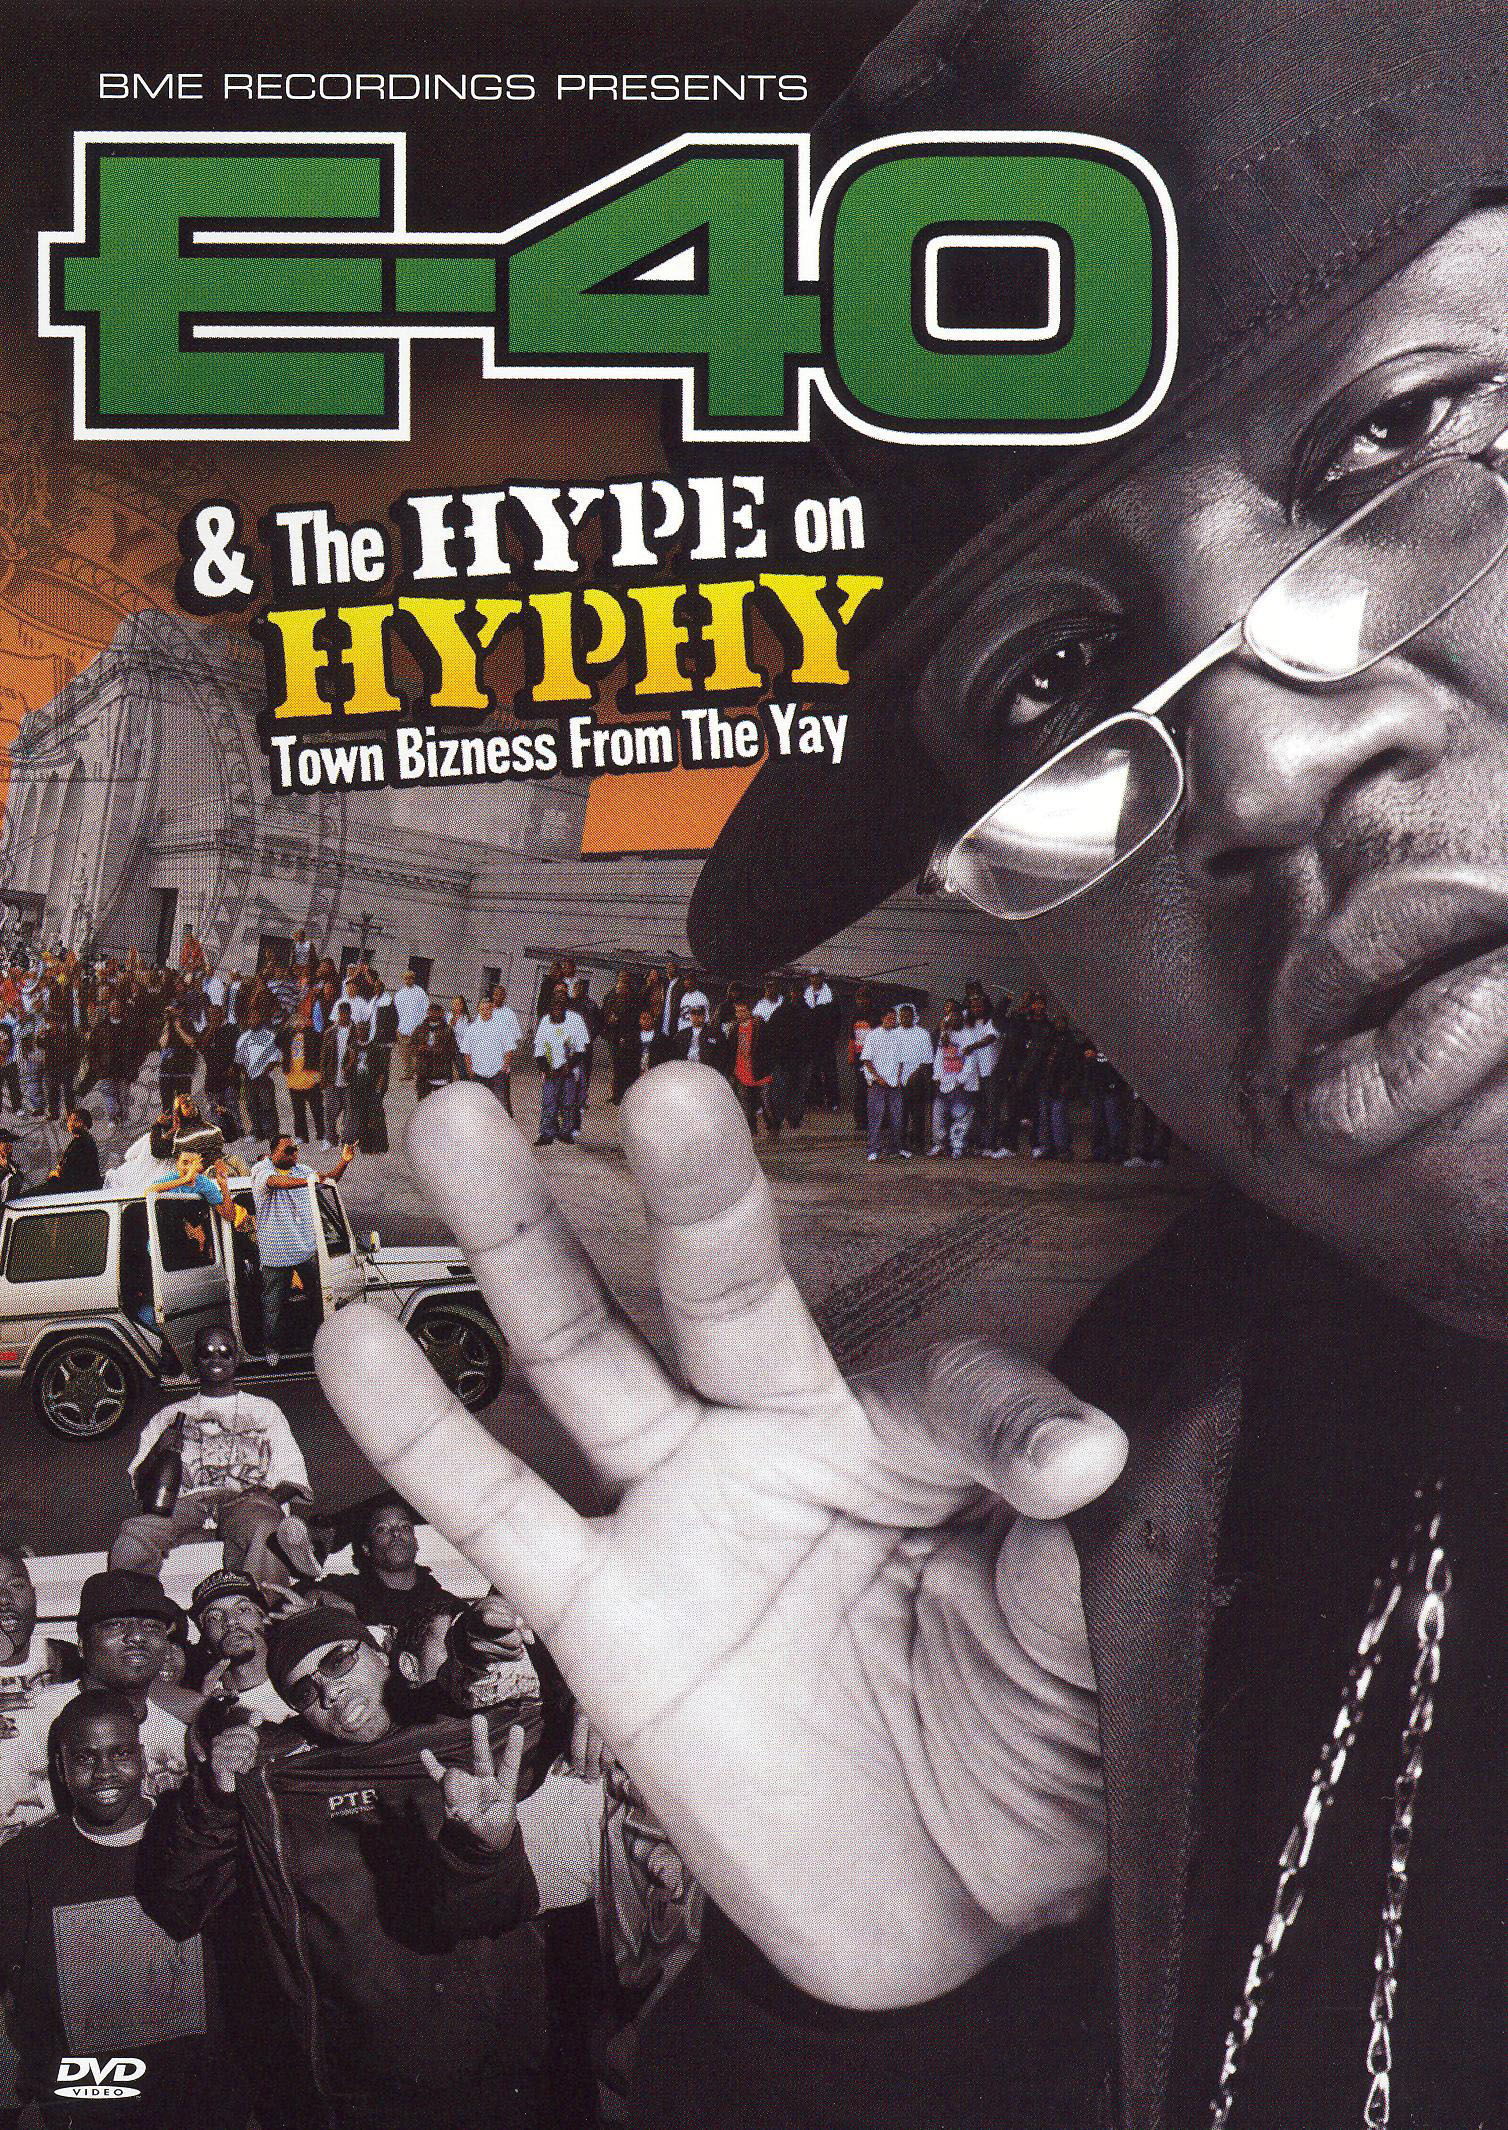 E-40 and The Hype on Hyphy